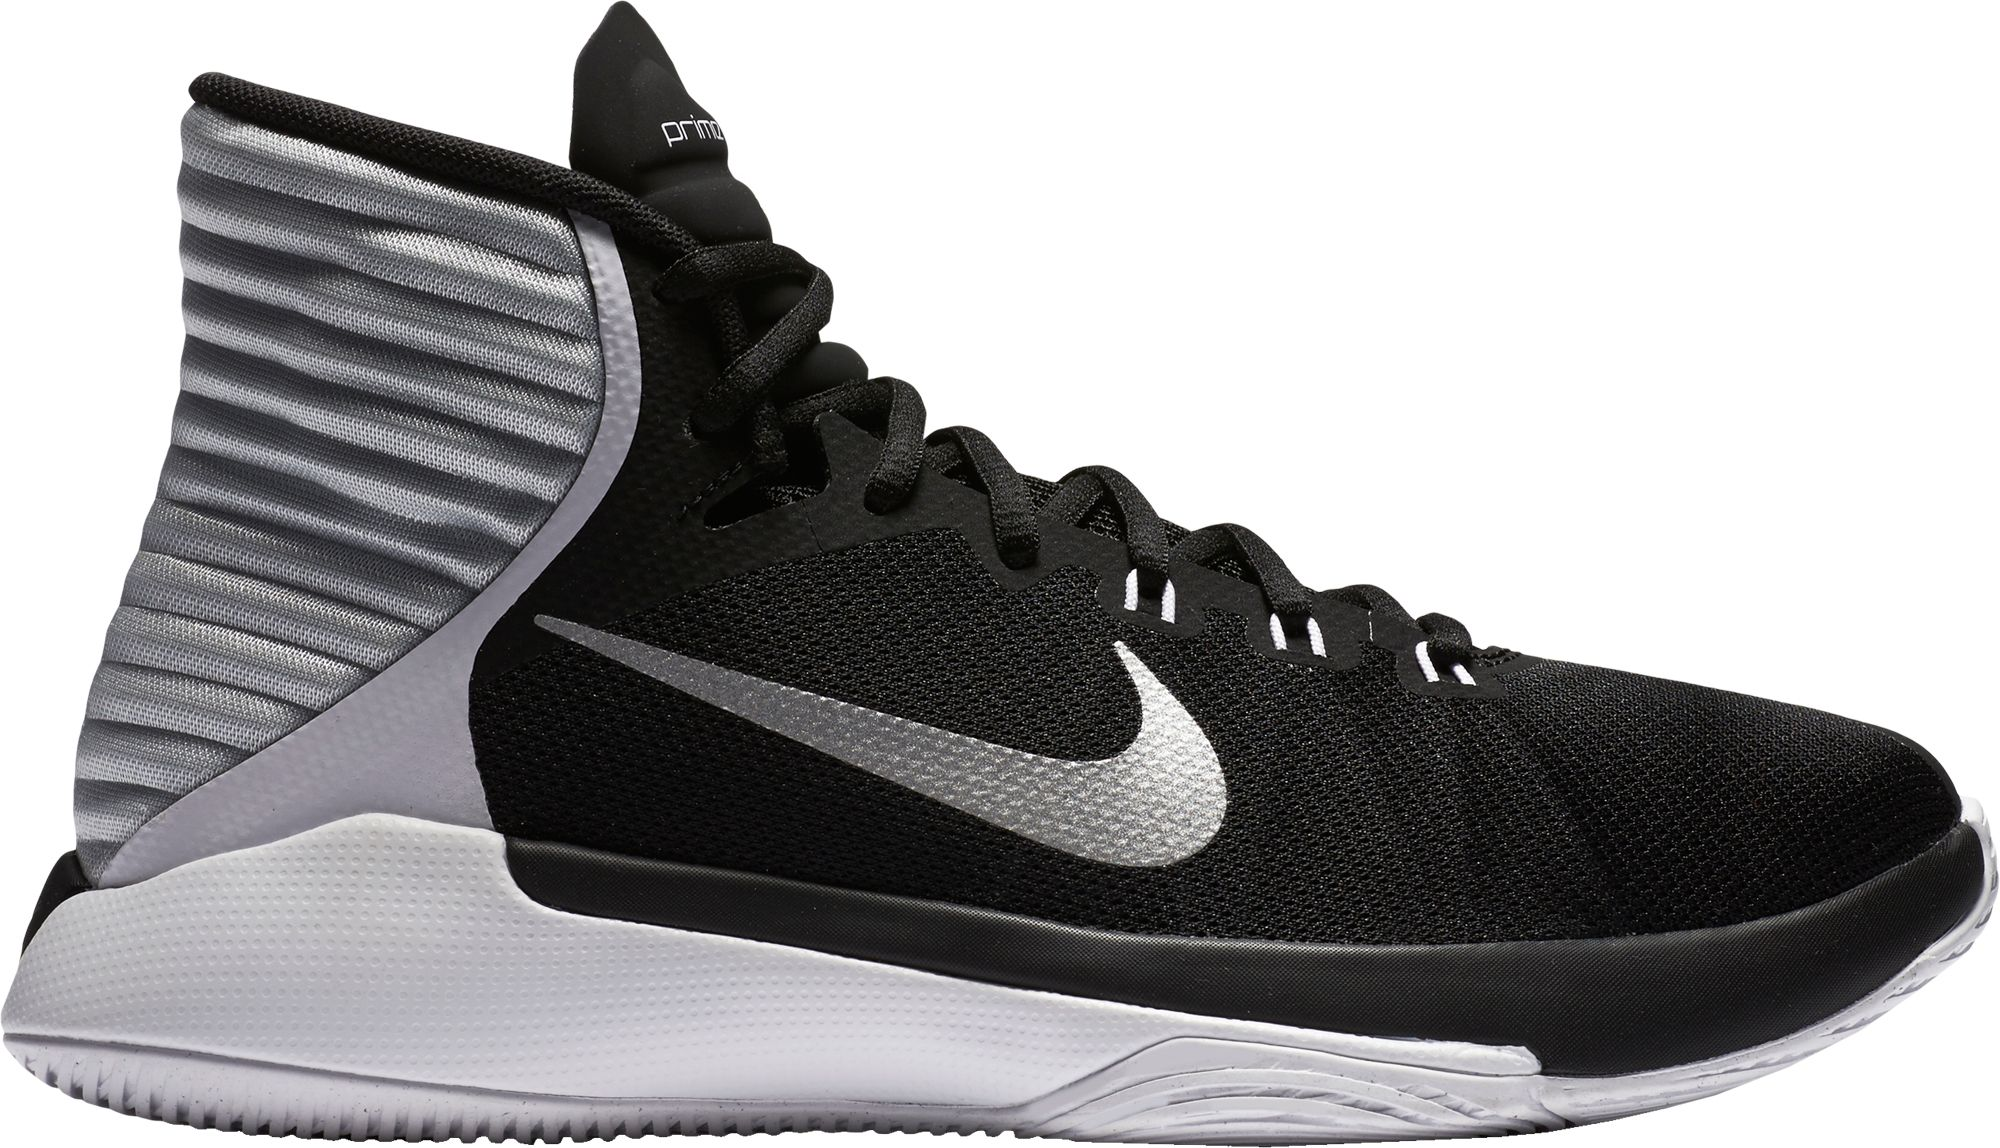 Nike Women\u0027s Prime Hype DF 2016 Basketball Shoes. 0:00. 0:00 / 0:00.  noImageFound ???